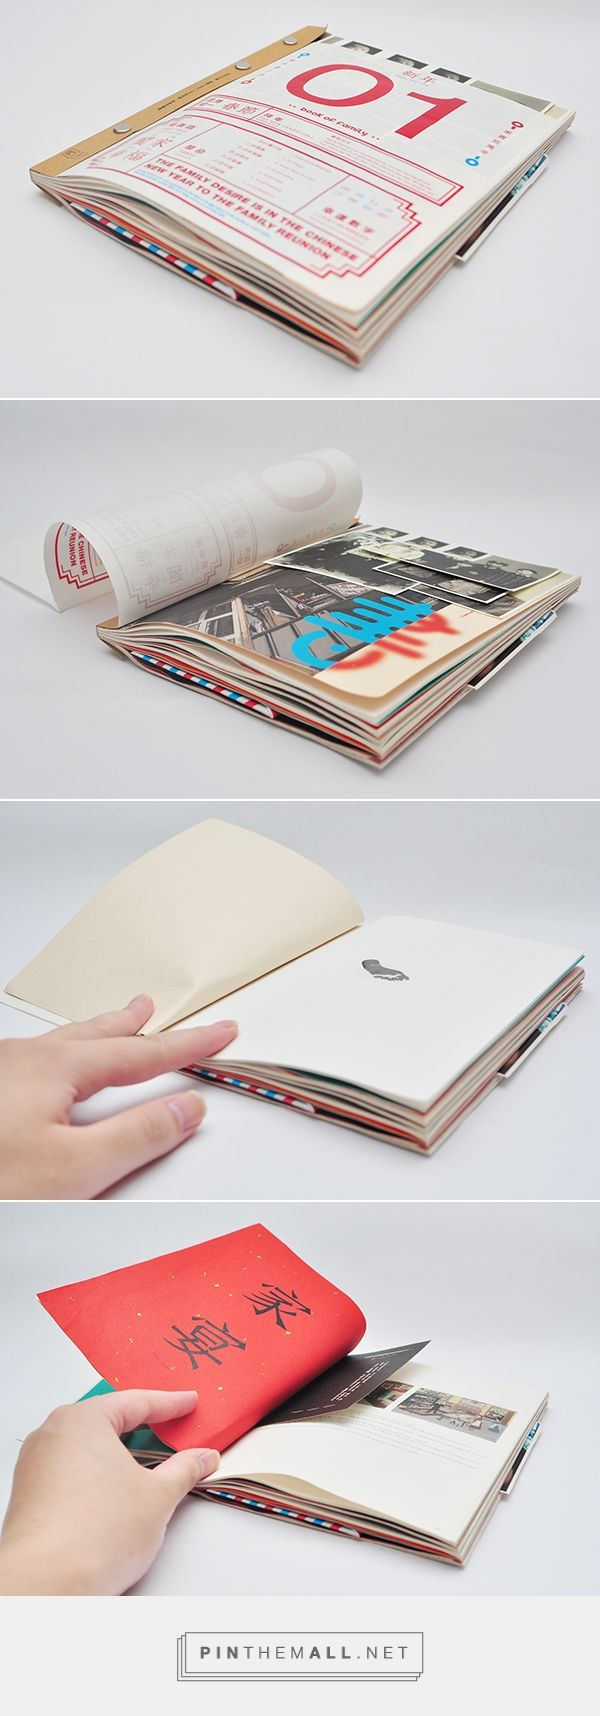 What's the book丨什麽書 on Behance - created via http://pinthemall.net